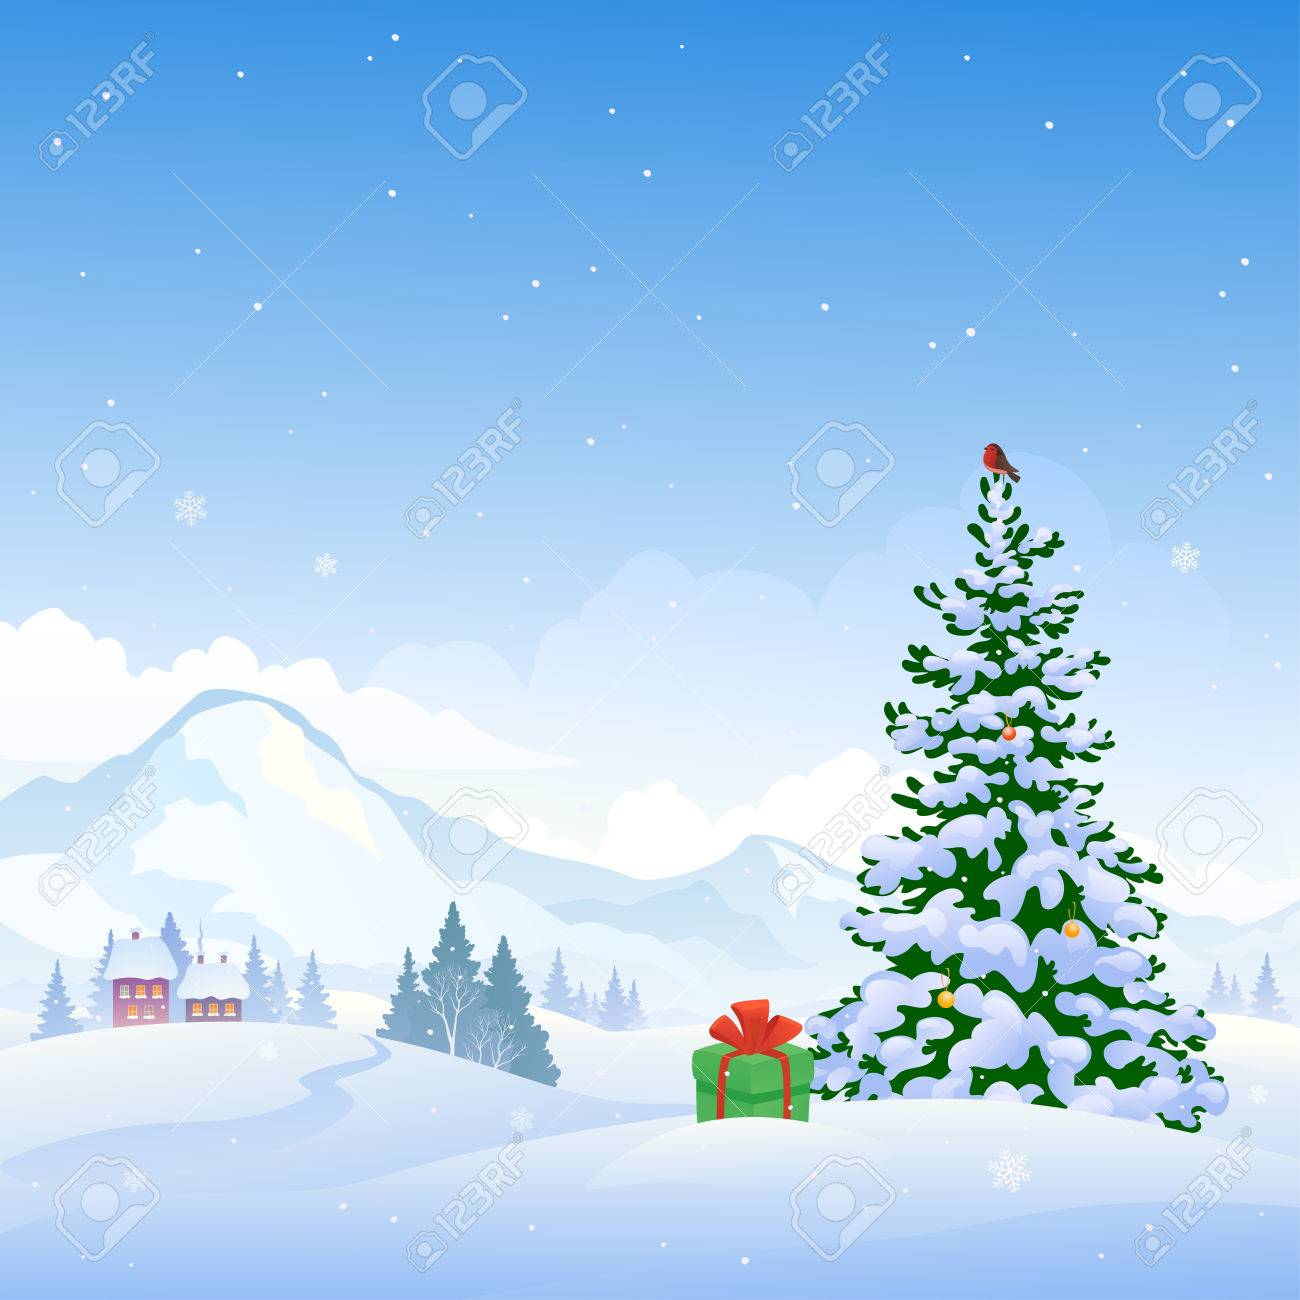 Mountain Christmas Tree.Illustration Of A Beautiful Christmas Nature Background With